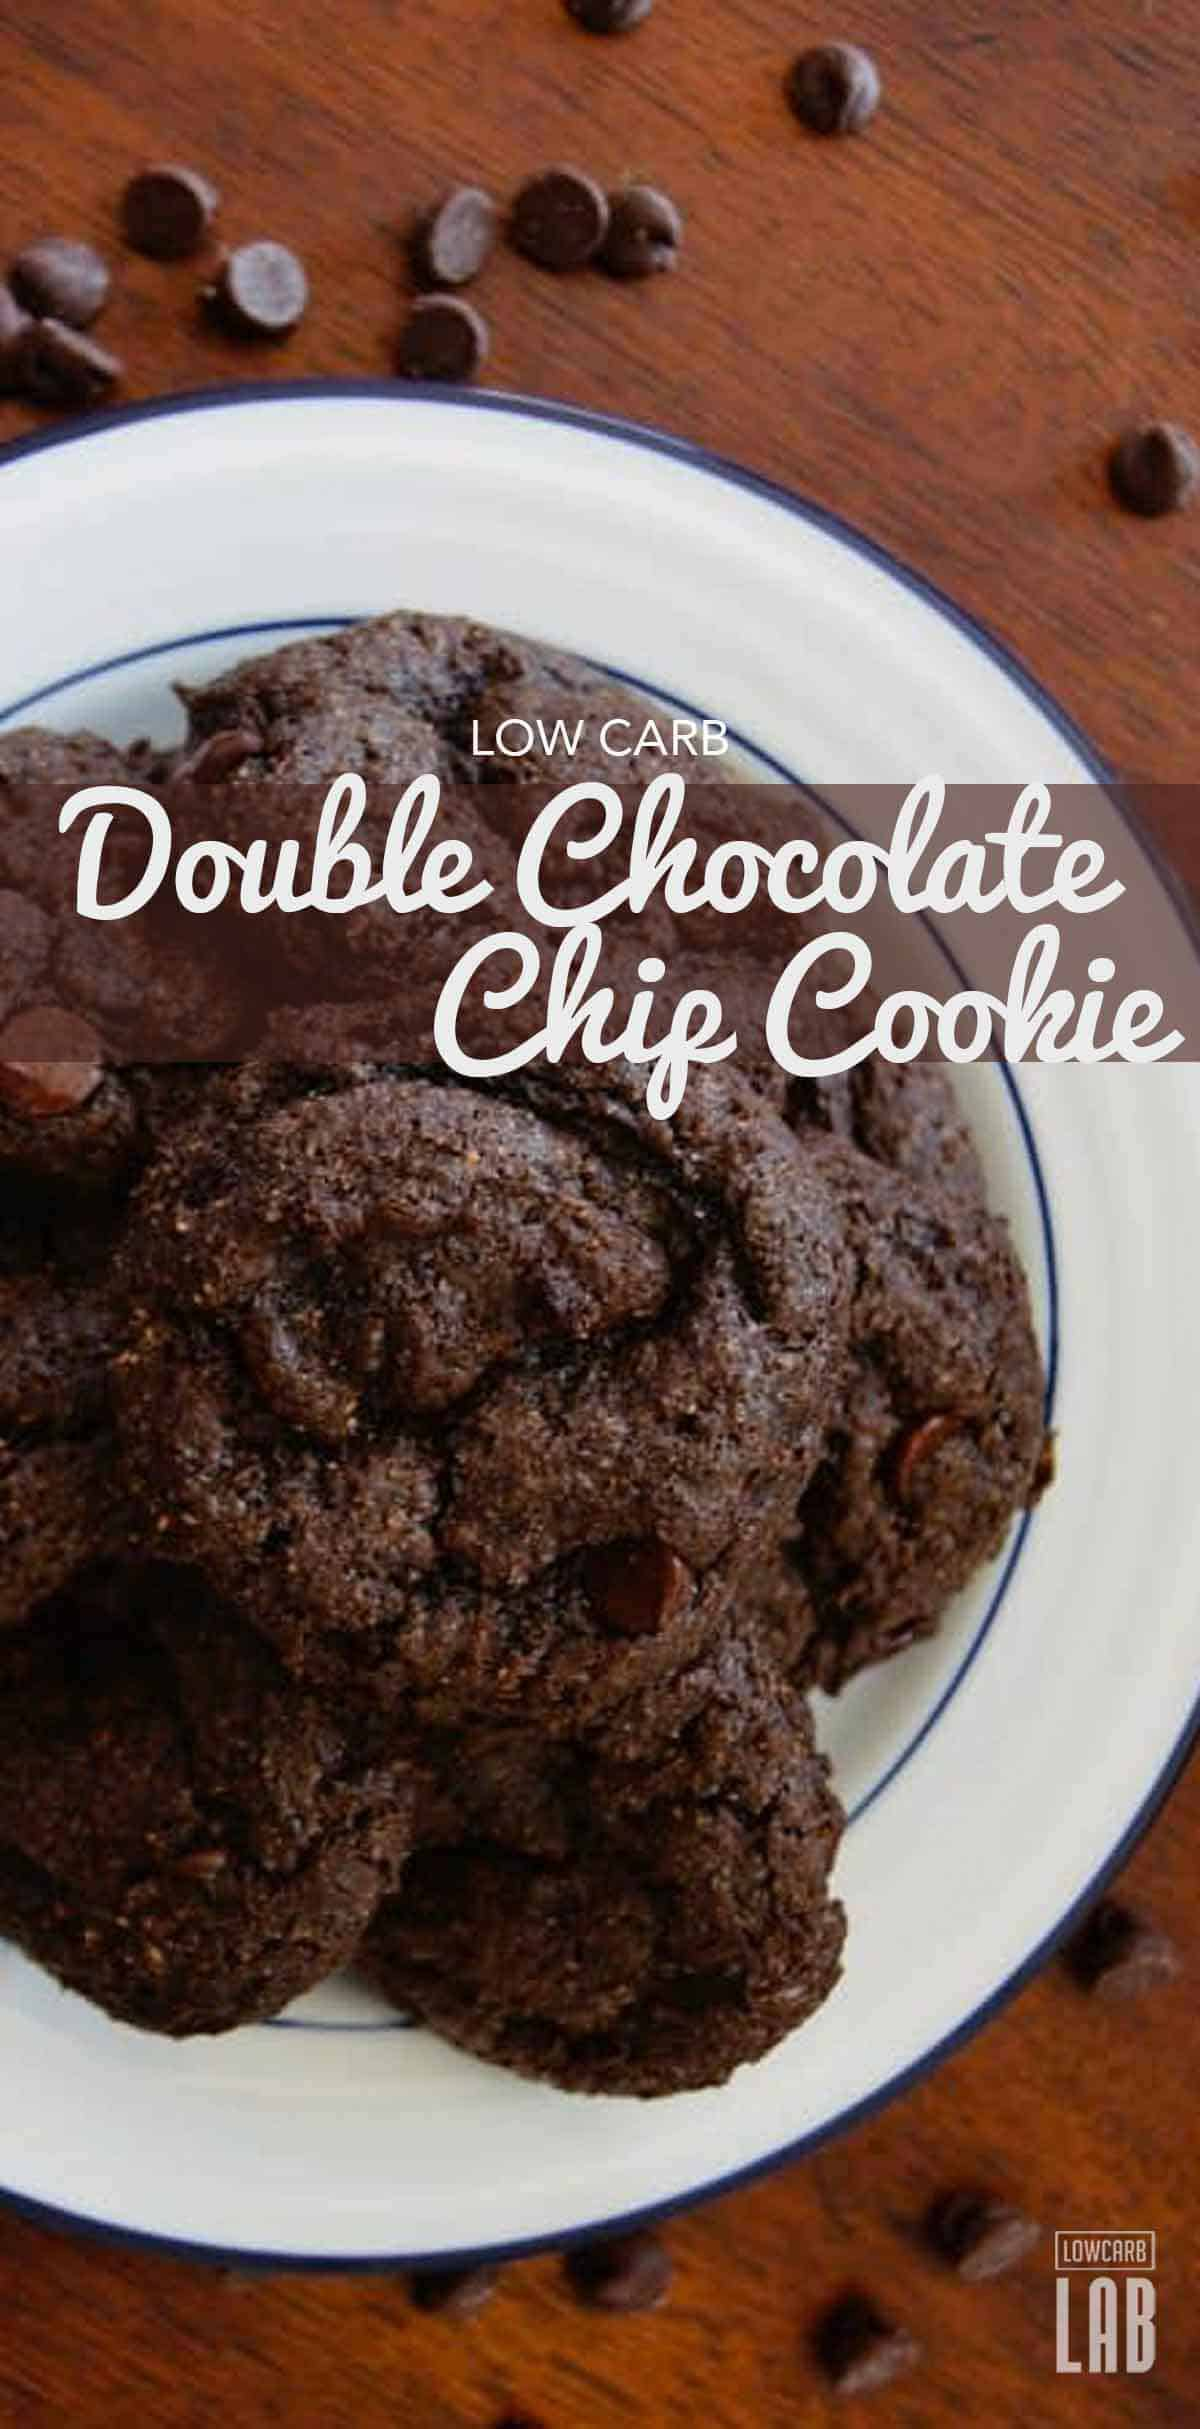 Delicious low carb double chocolate chip cookie recipe